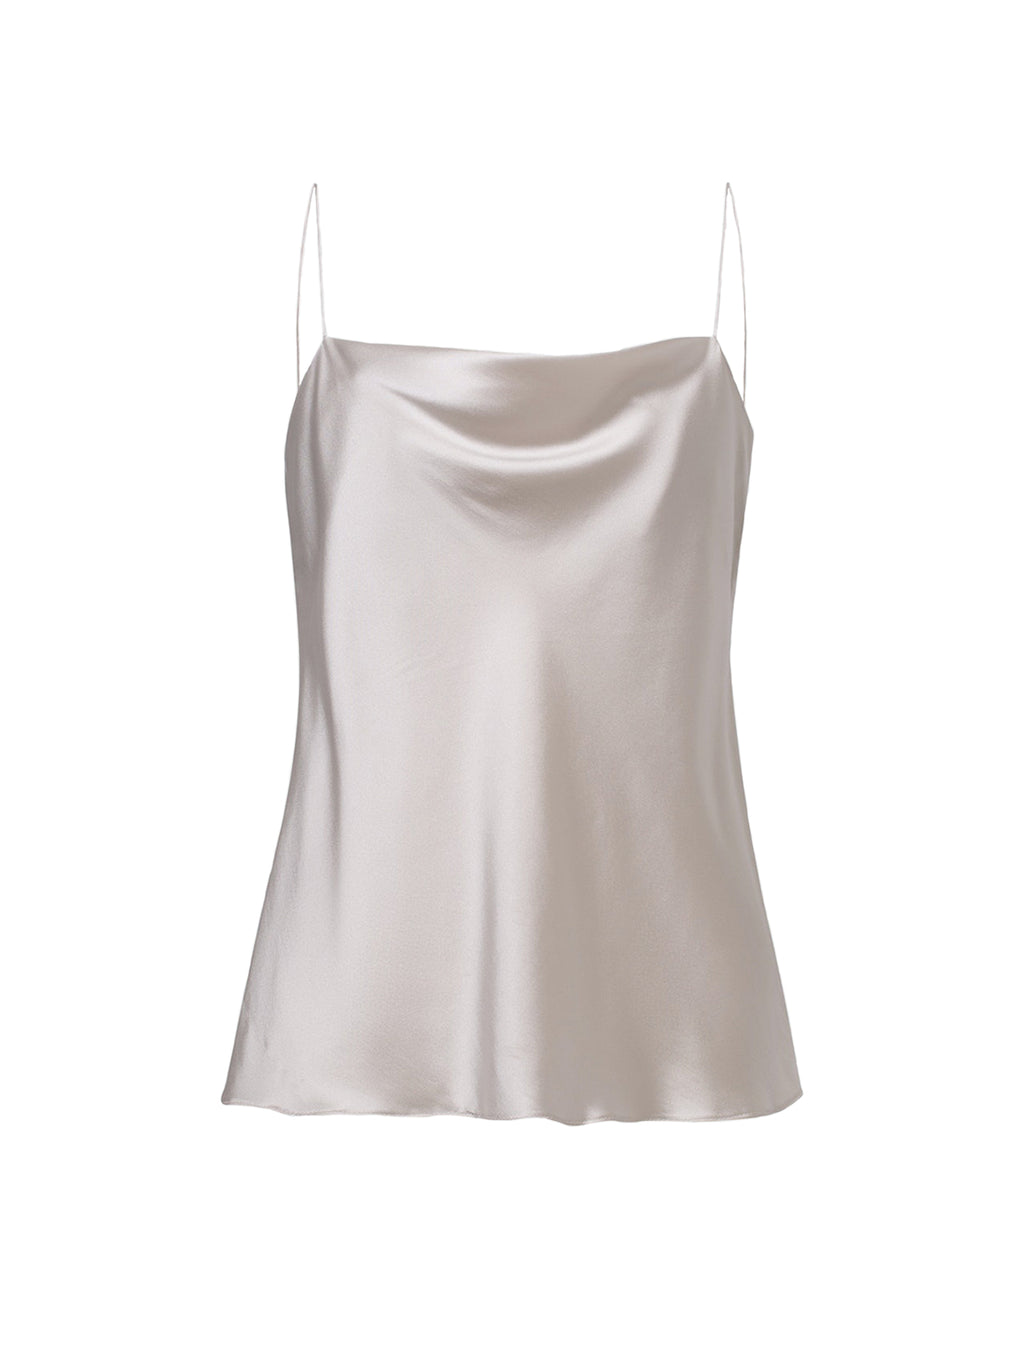 Dorothee Schumacher Sense of Shine Top